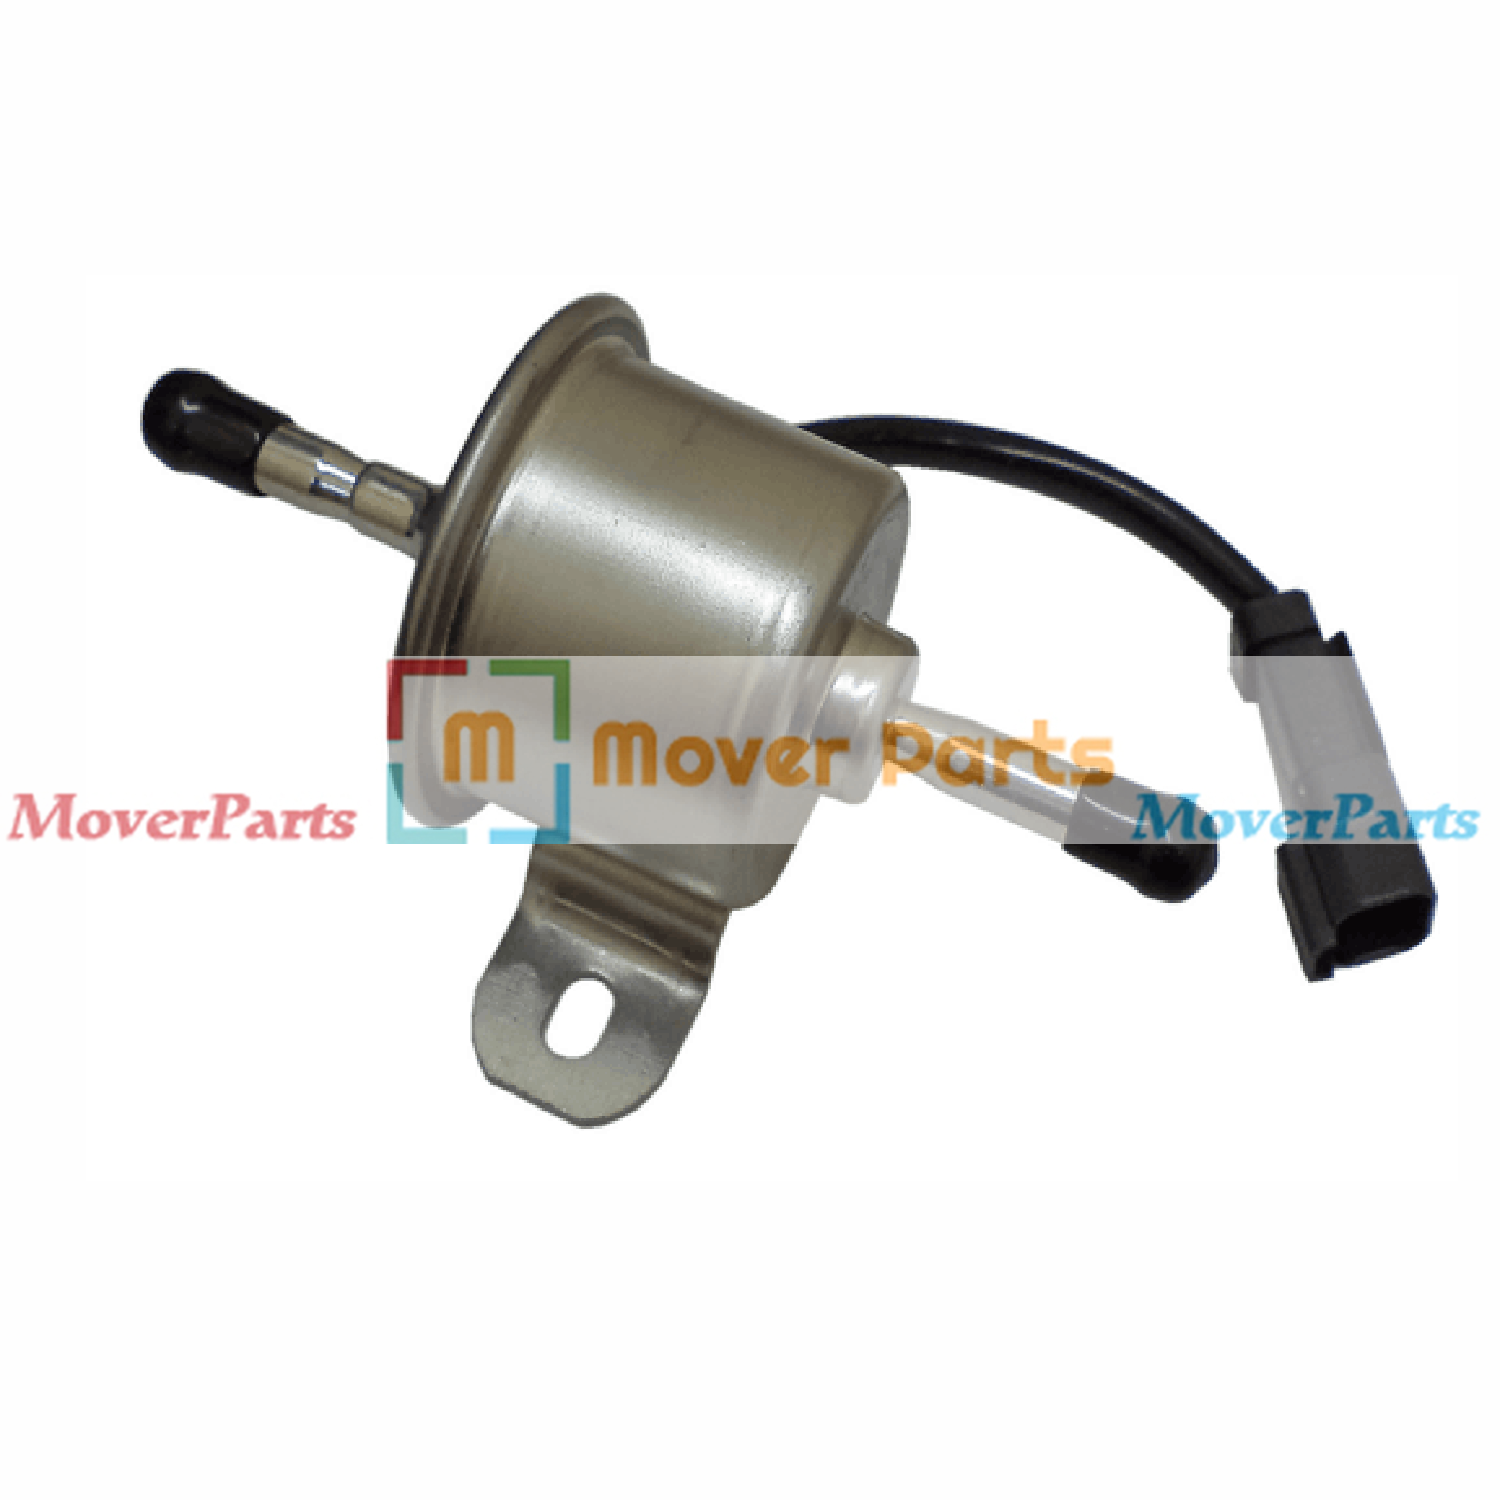 857528e49ec Fuel Pump 485510011 for Perkins HP-404C-22 KD-103-10 KE-103-15 KN ...